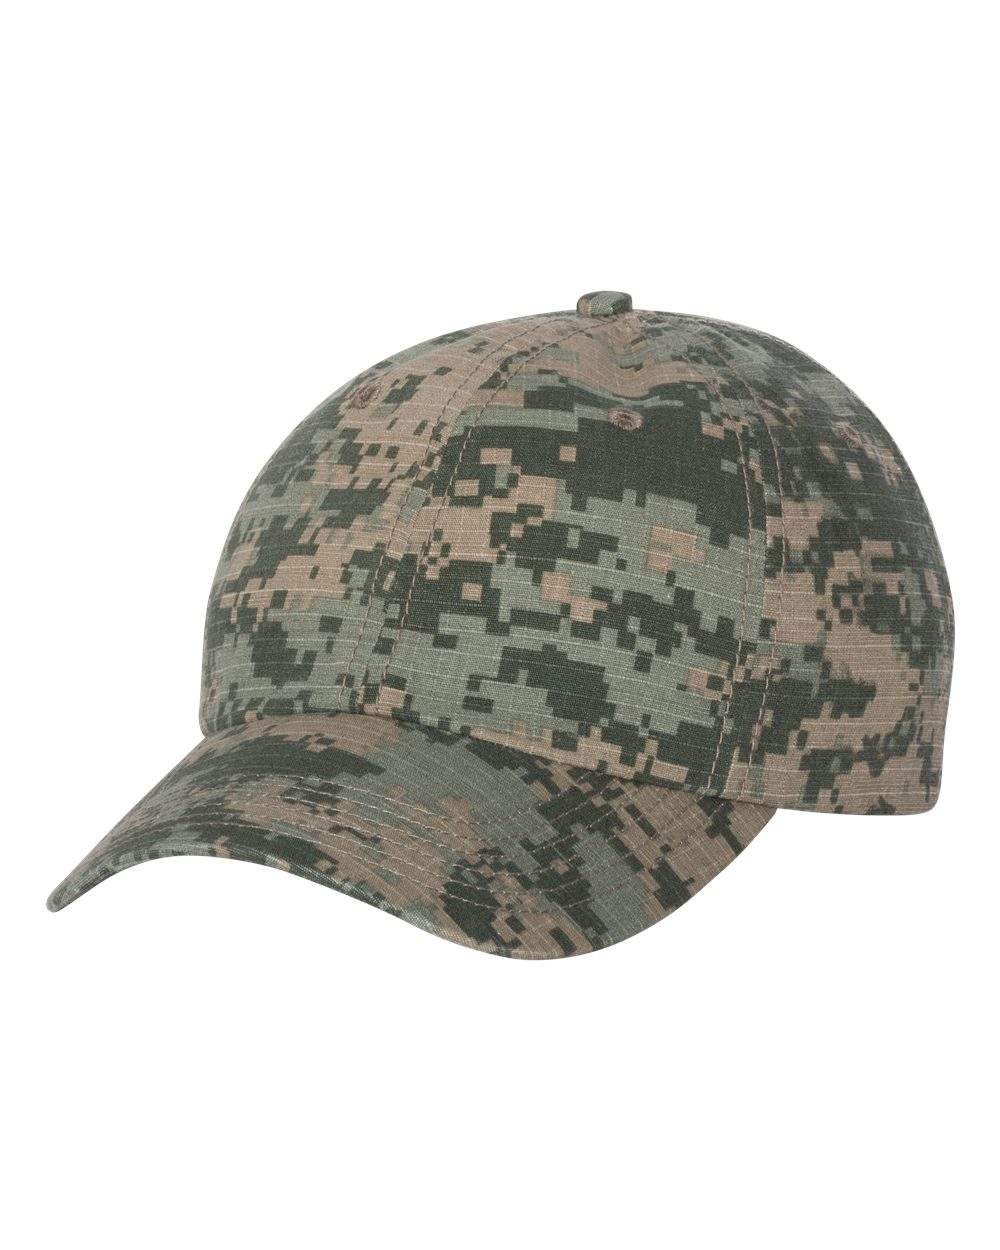 click to view Olive Digital Camo